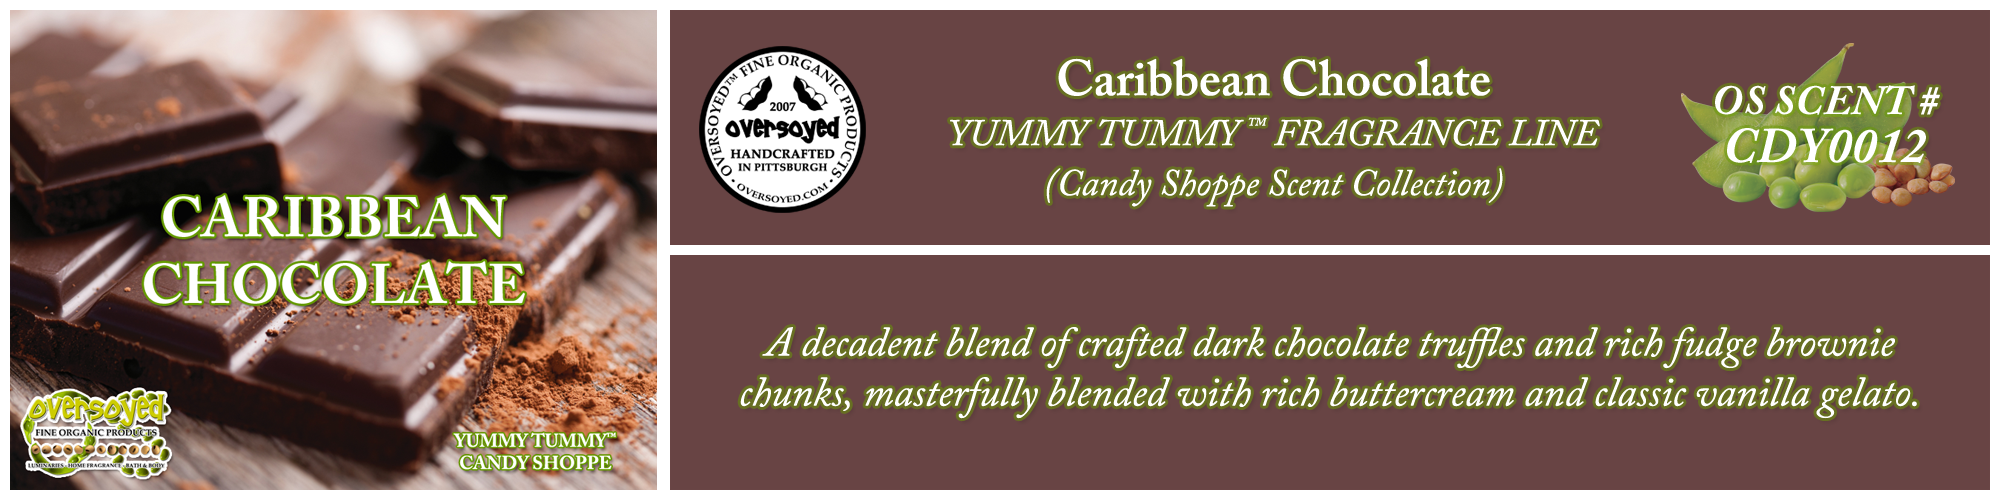 Caribbean Chocolate Handcrafted Products Collection